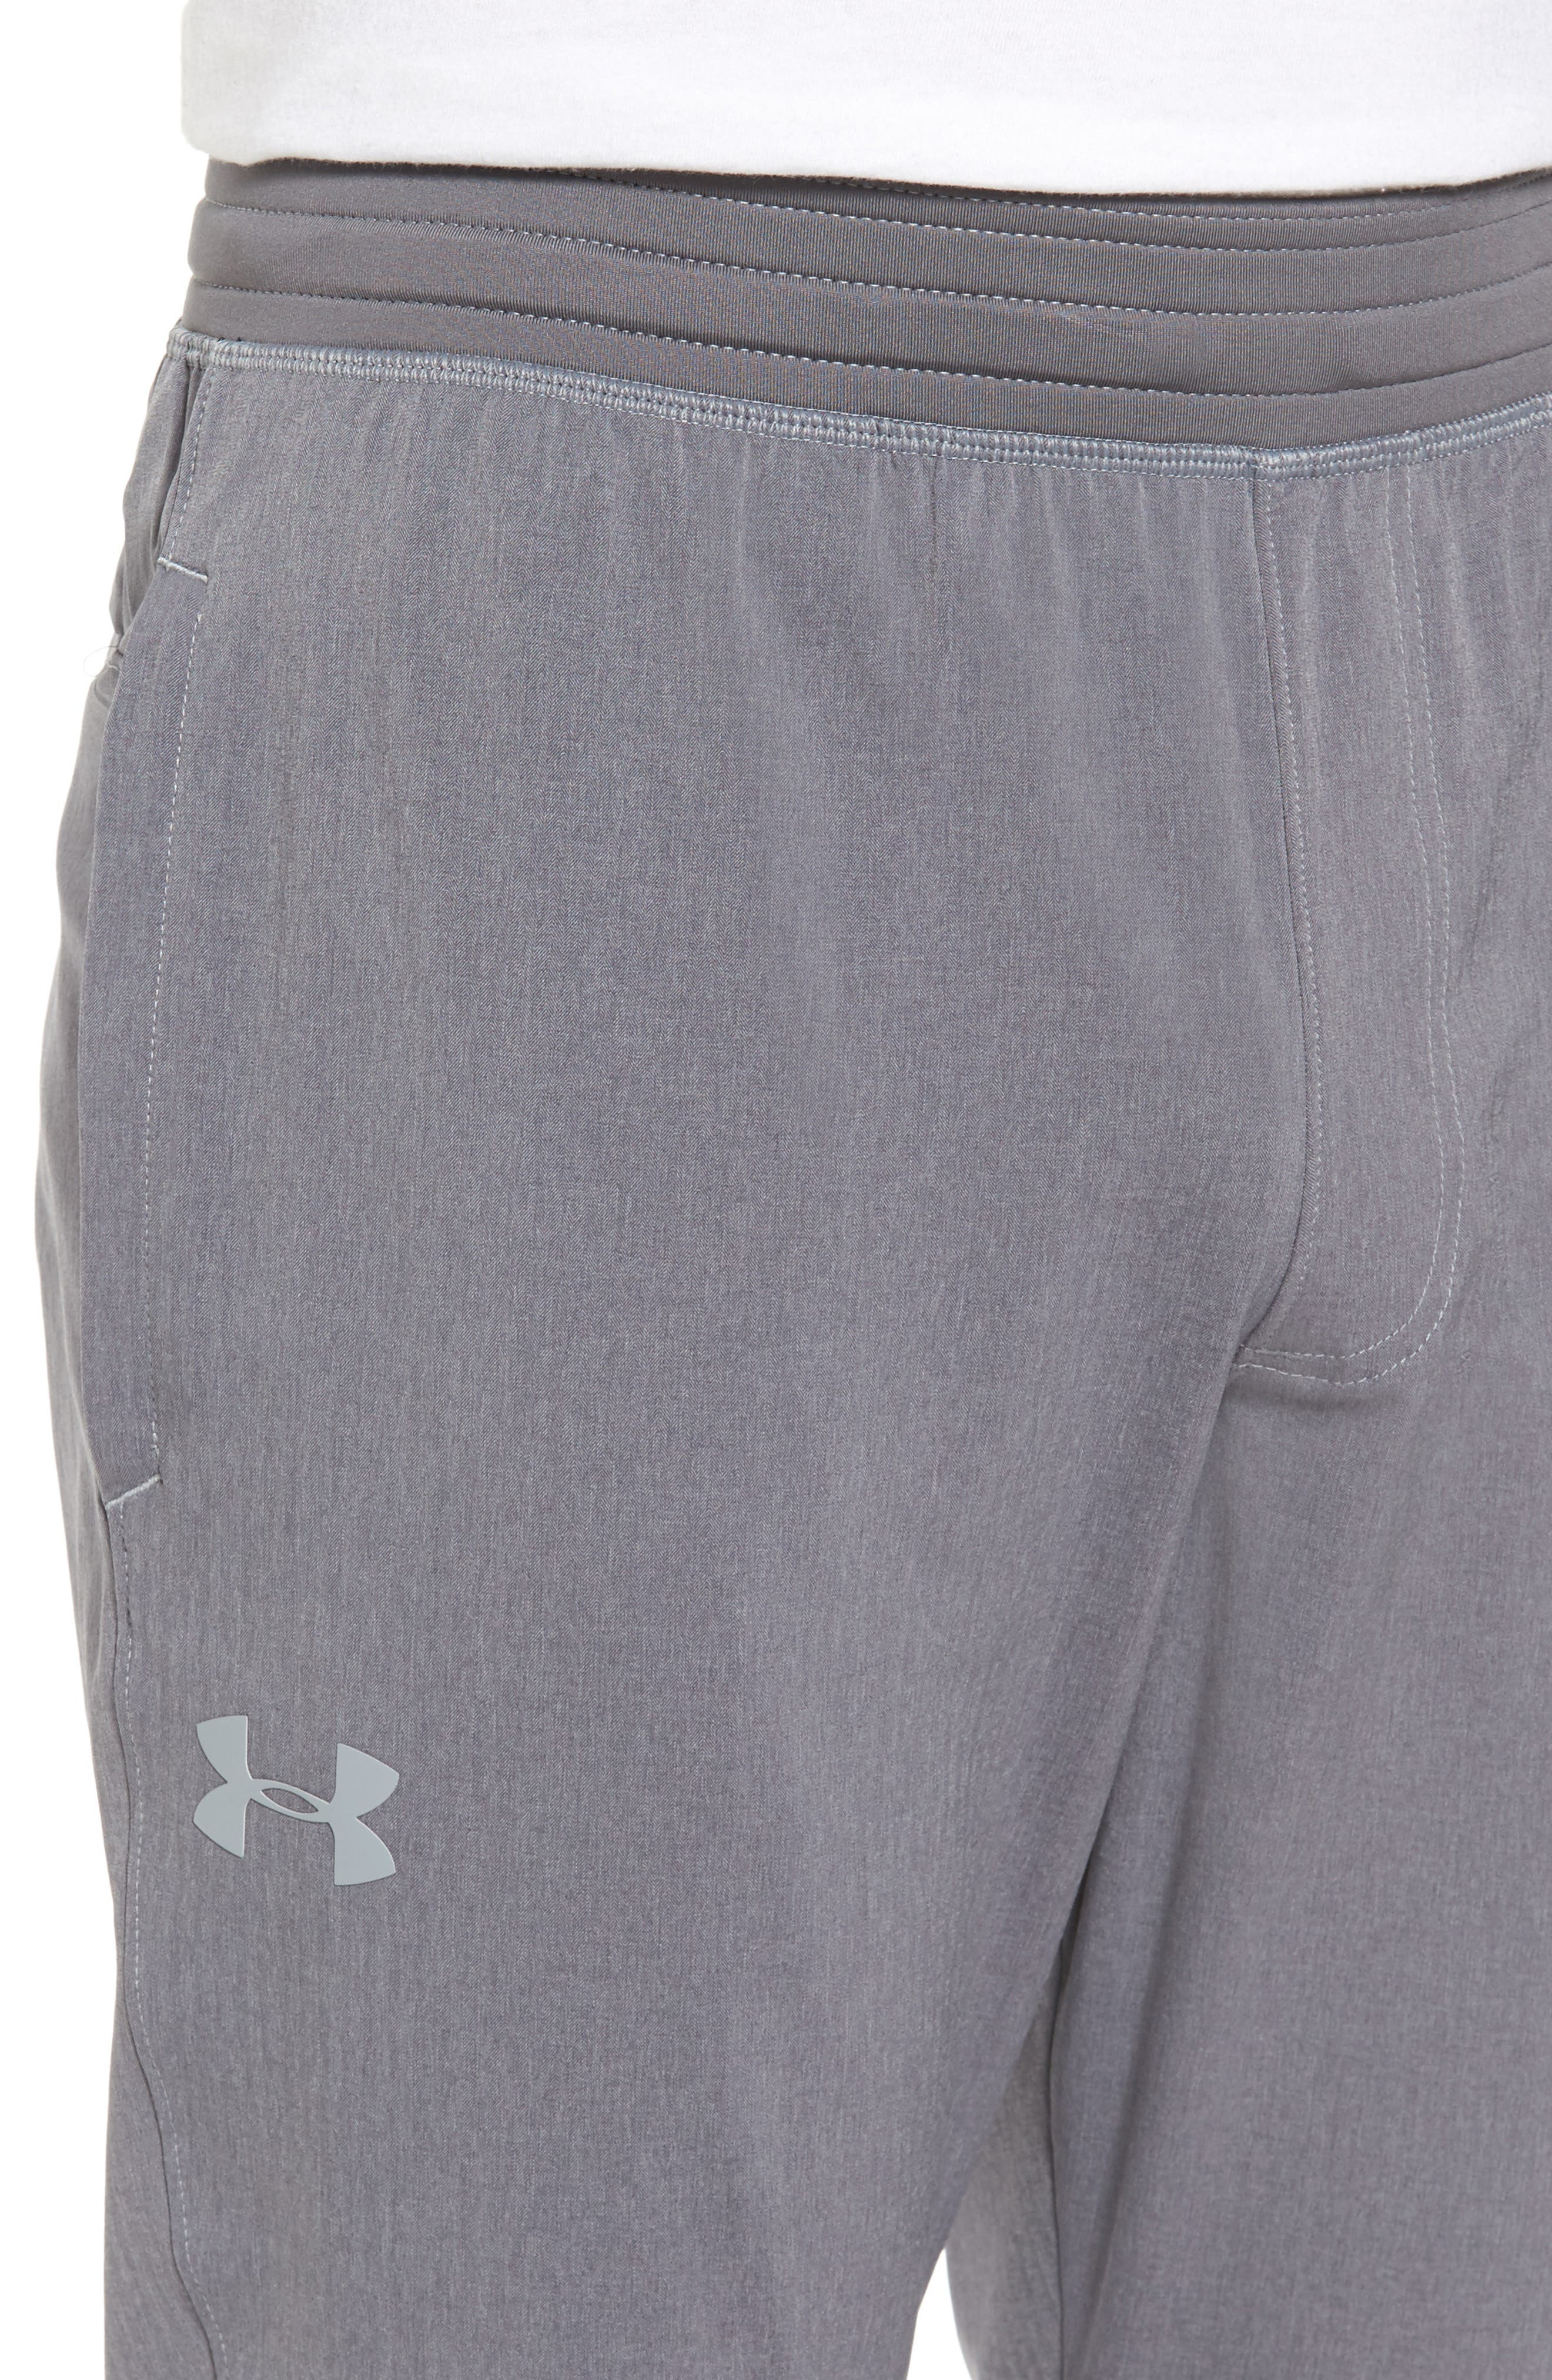 Fitted Woven Training Pants,                             Alternate thumbnail 4, color,                             Grey Heather / Black / Steel